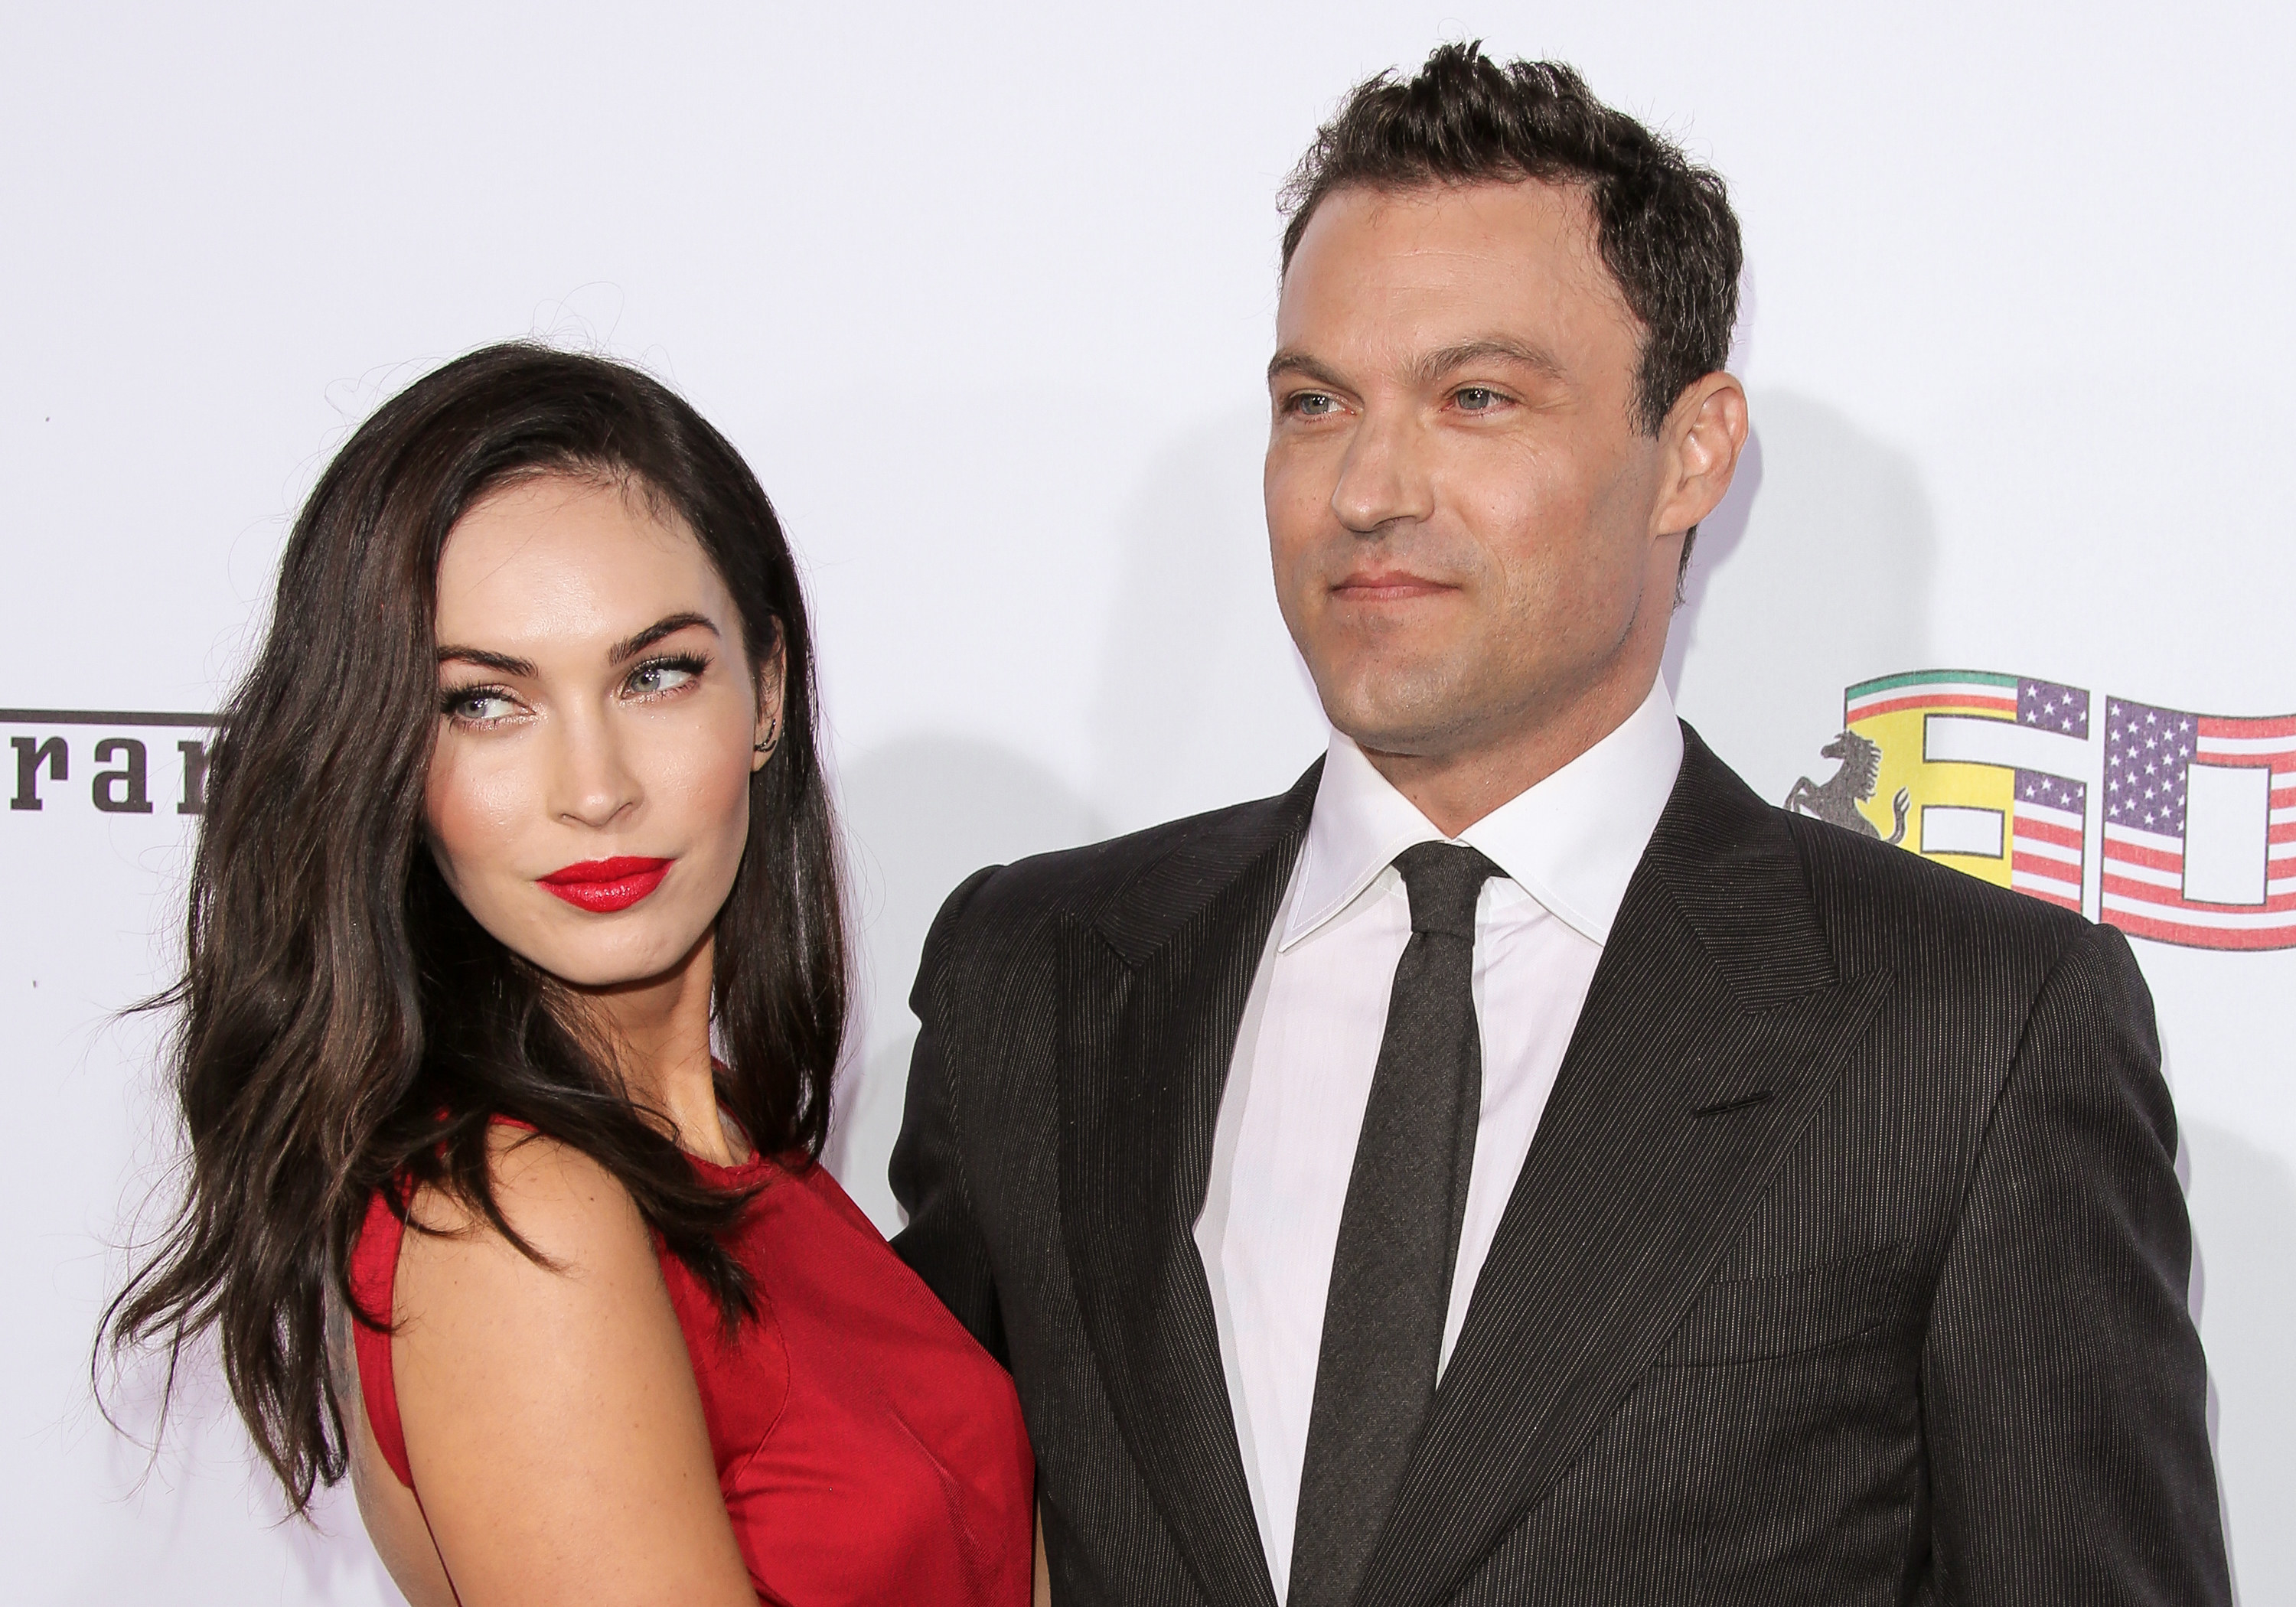 Actors Megan Fox (L) and Brian Austin Green (R) attend Ferrari's 60th Anniversary In The USA Gala at the Wallis Annenberg Center for the Performing Arts on October 11, 2014 in Beverly Hills, California